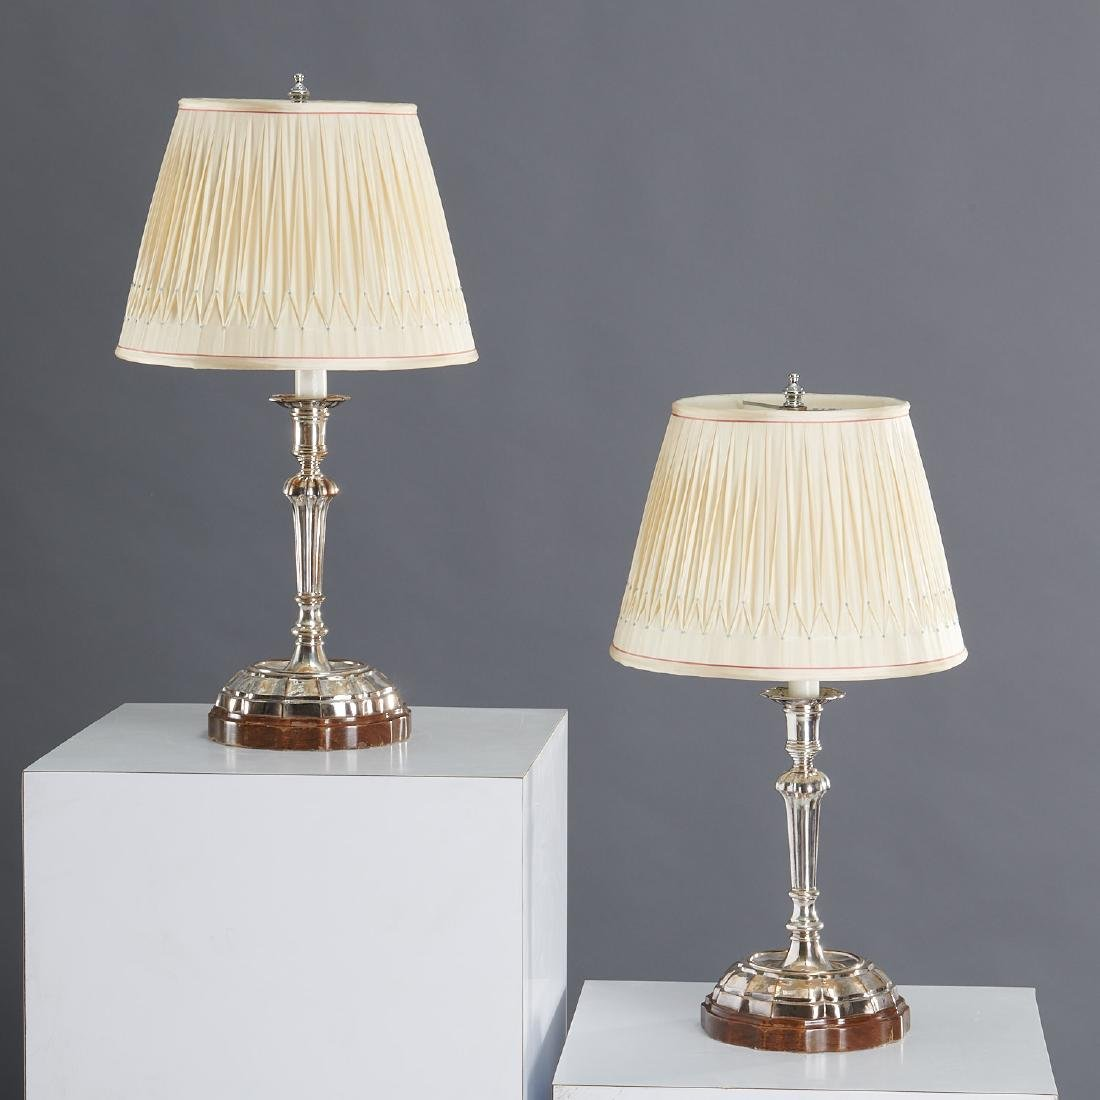 Pair signed Buccellati silver candlestick lamps